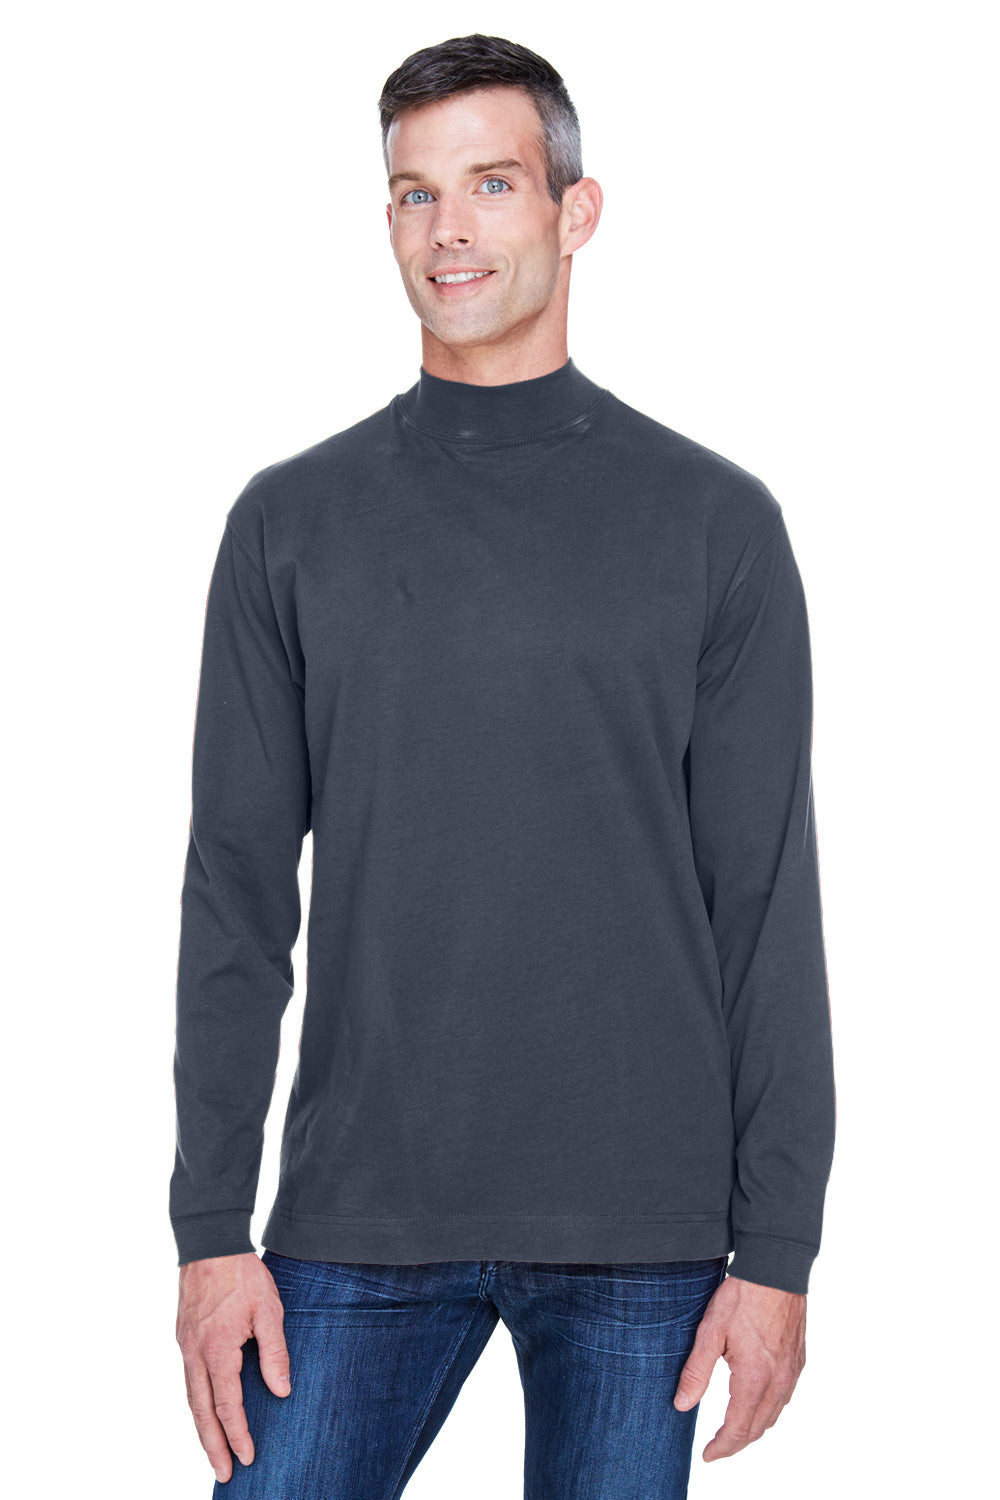 Devon & Jones D420 Mens Sueded Jersey Long Sleeve Mock Neck T-Shirt Navy Blue Front